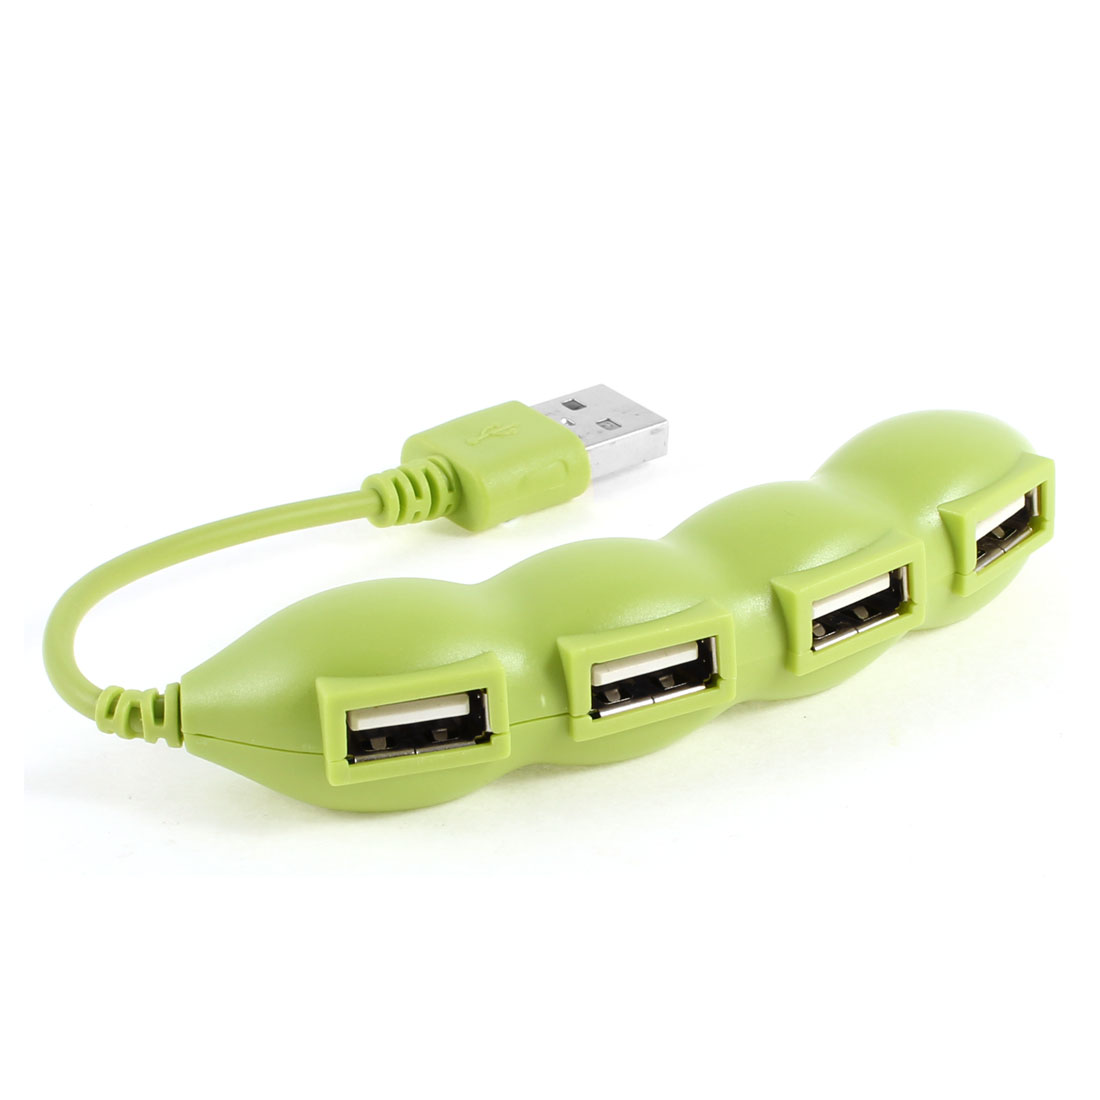 480mbs 500GB Laptop Notebook USB 2.0 Pea Shaped 4-Port Hub Green